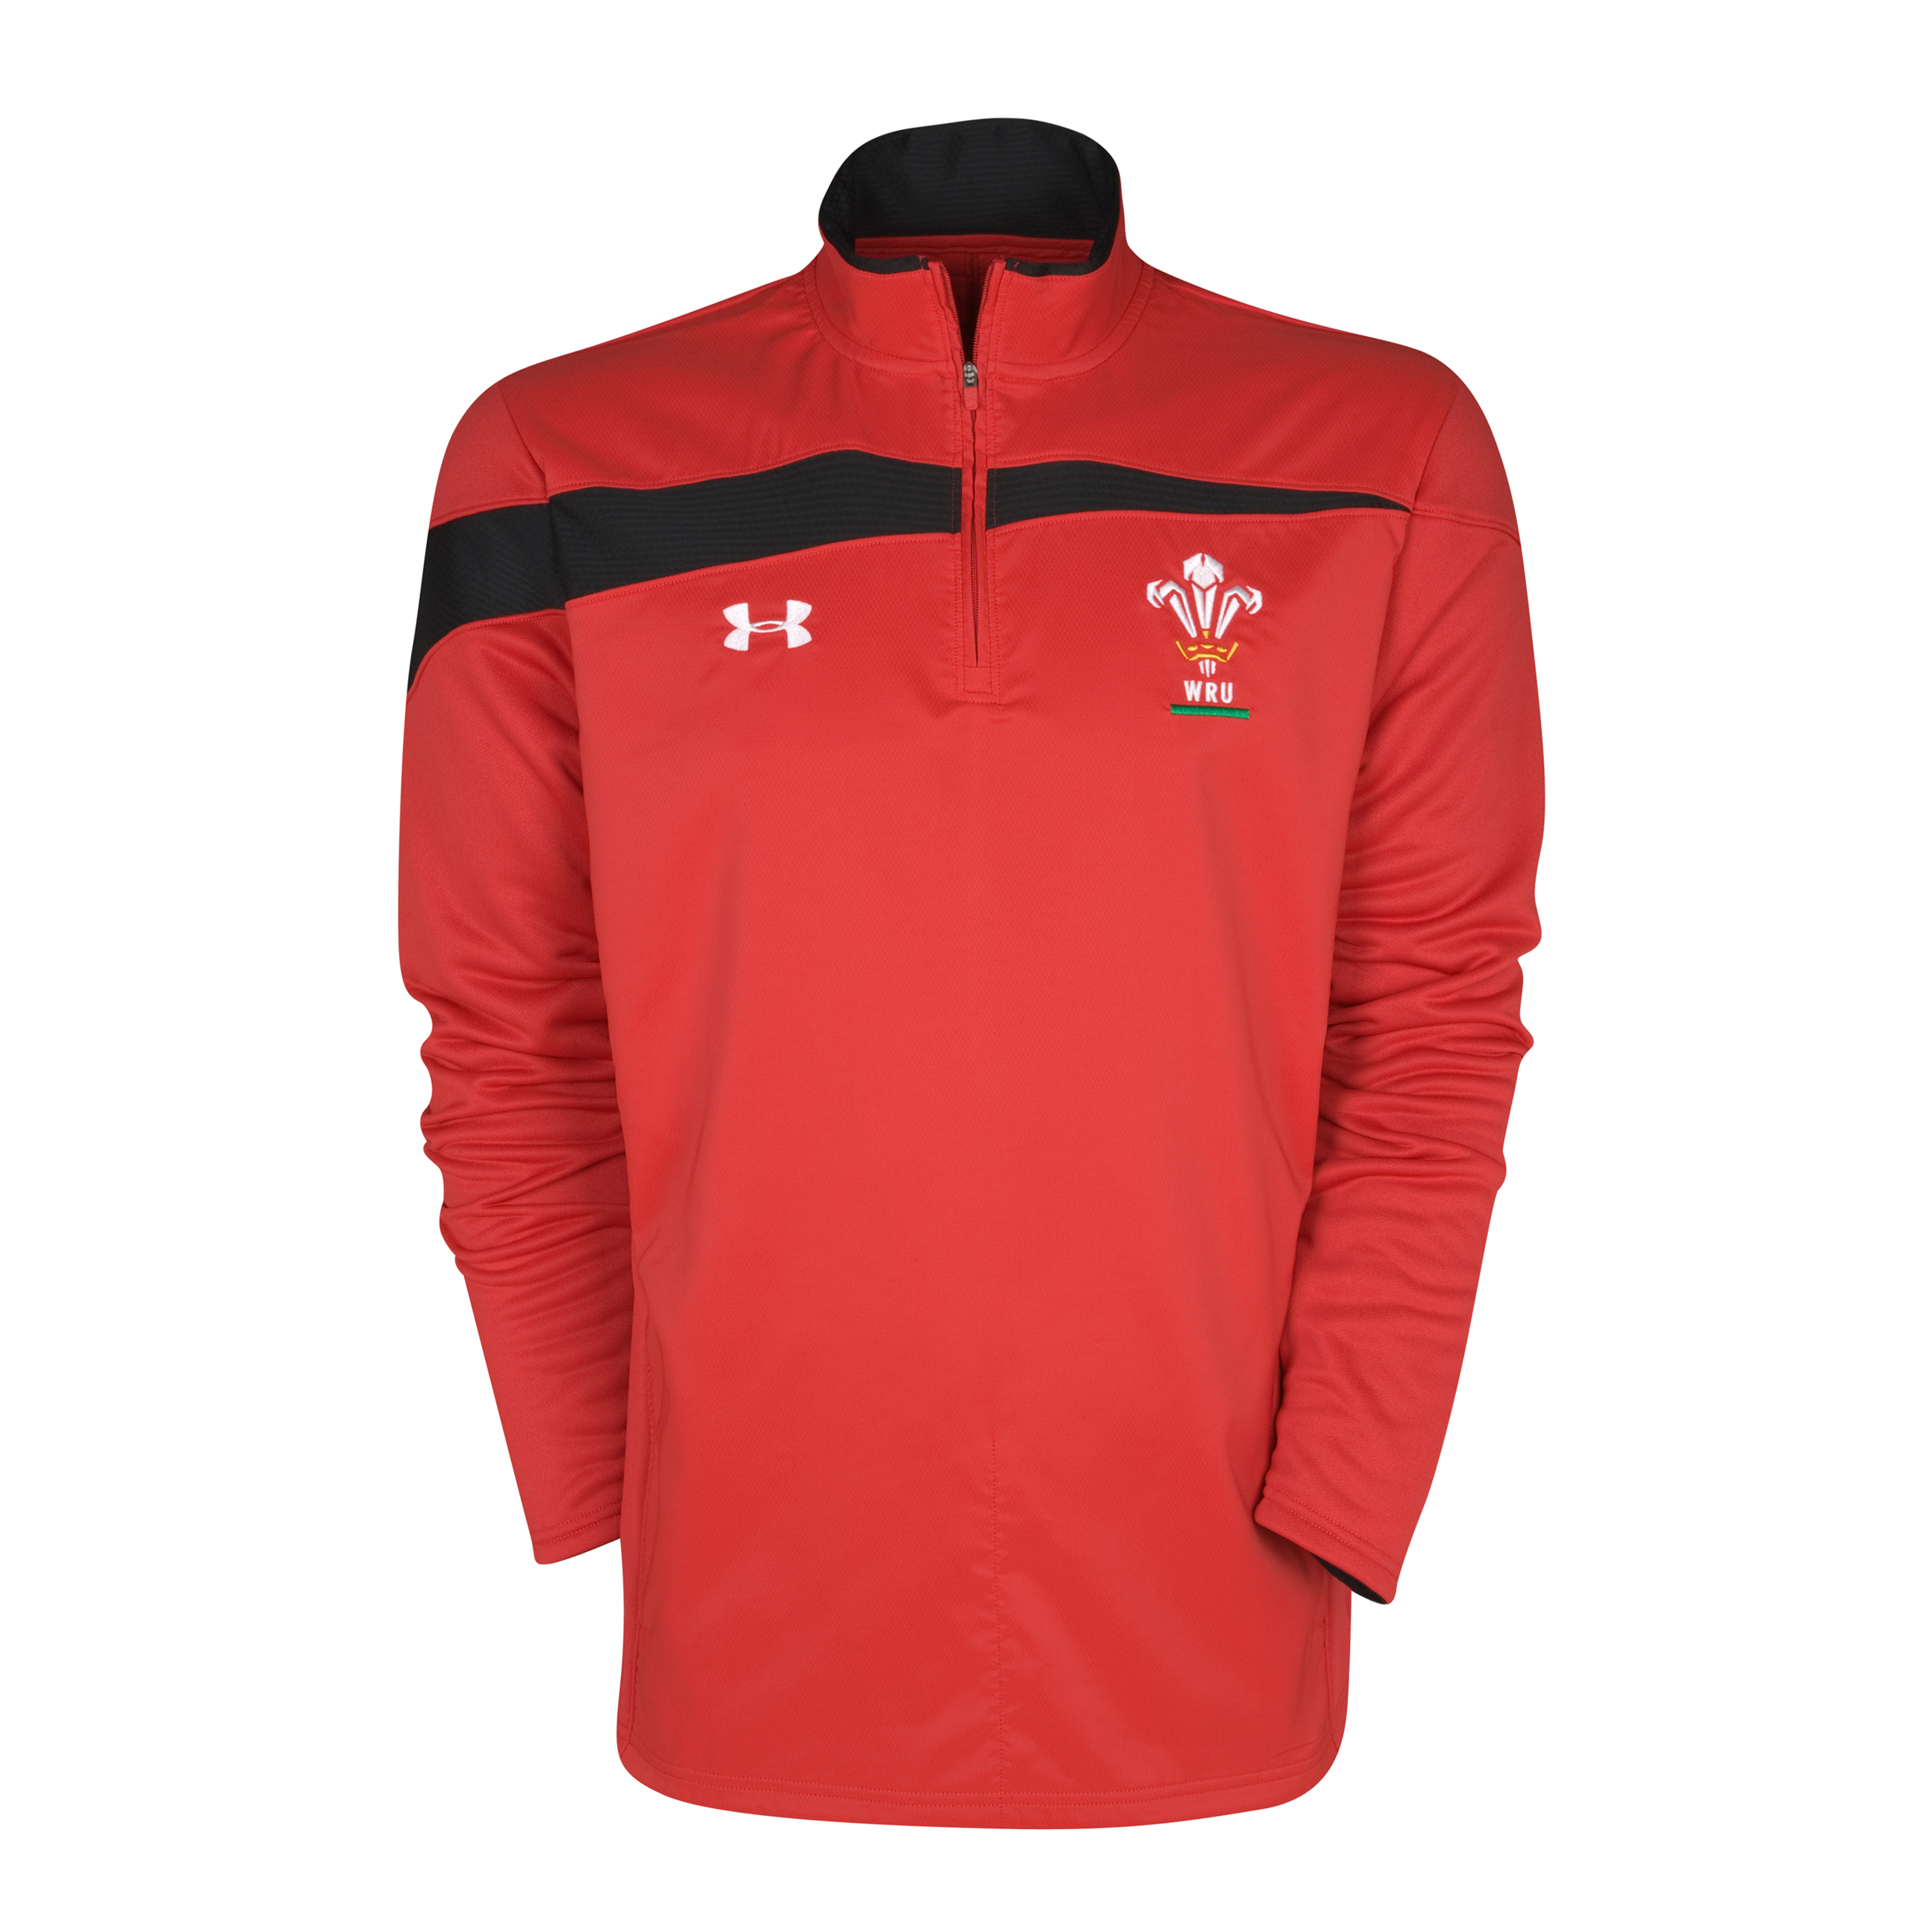 Wales Rugby Union 10k Force 1/4 Zip Top - Red/Black. for 20€